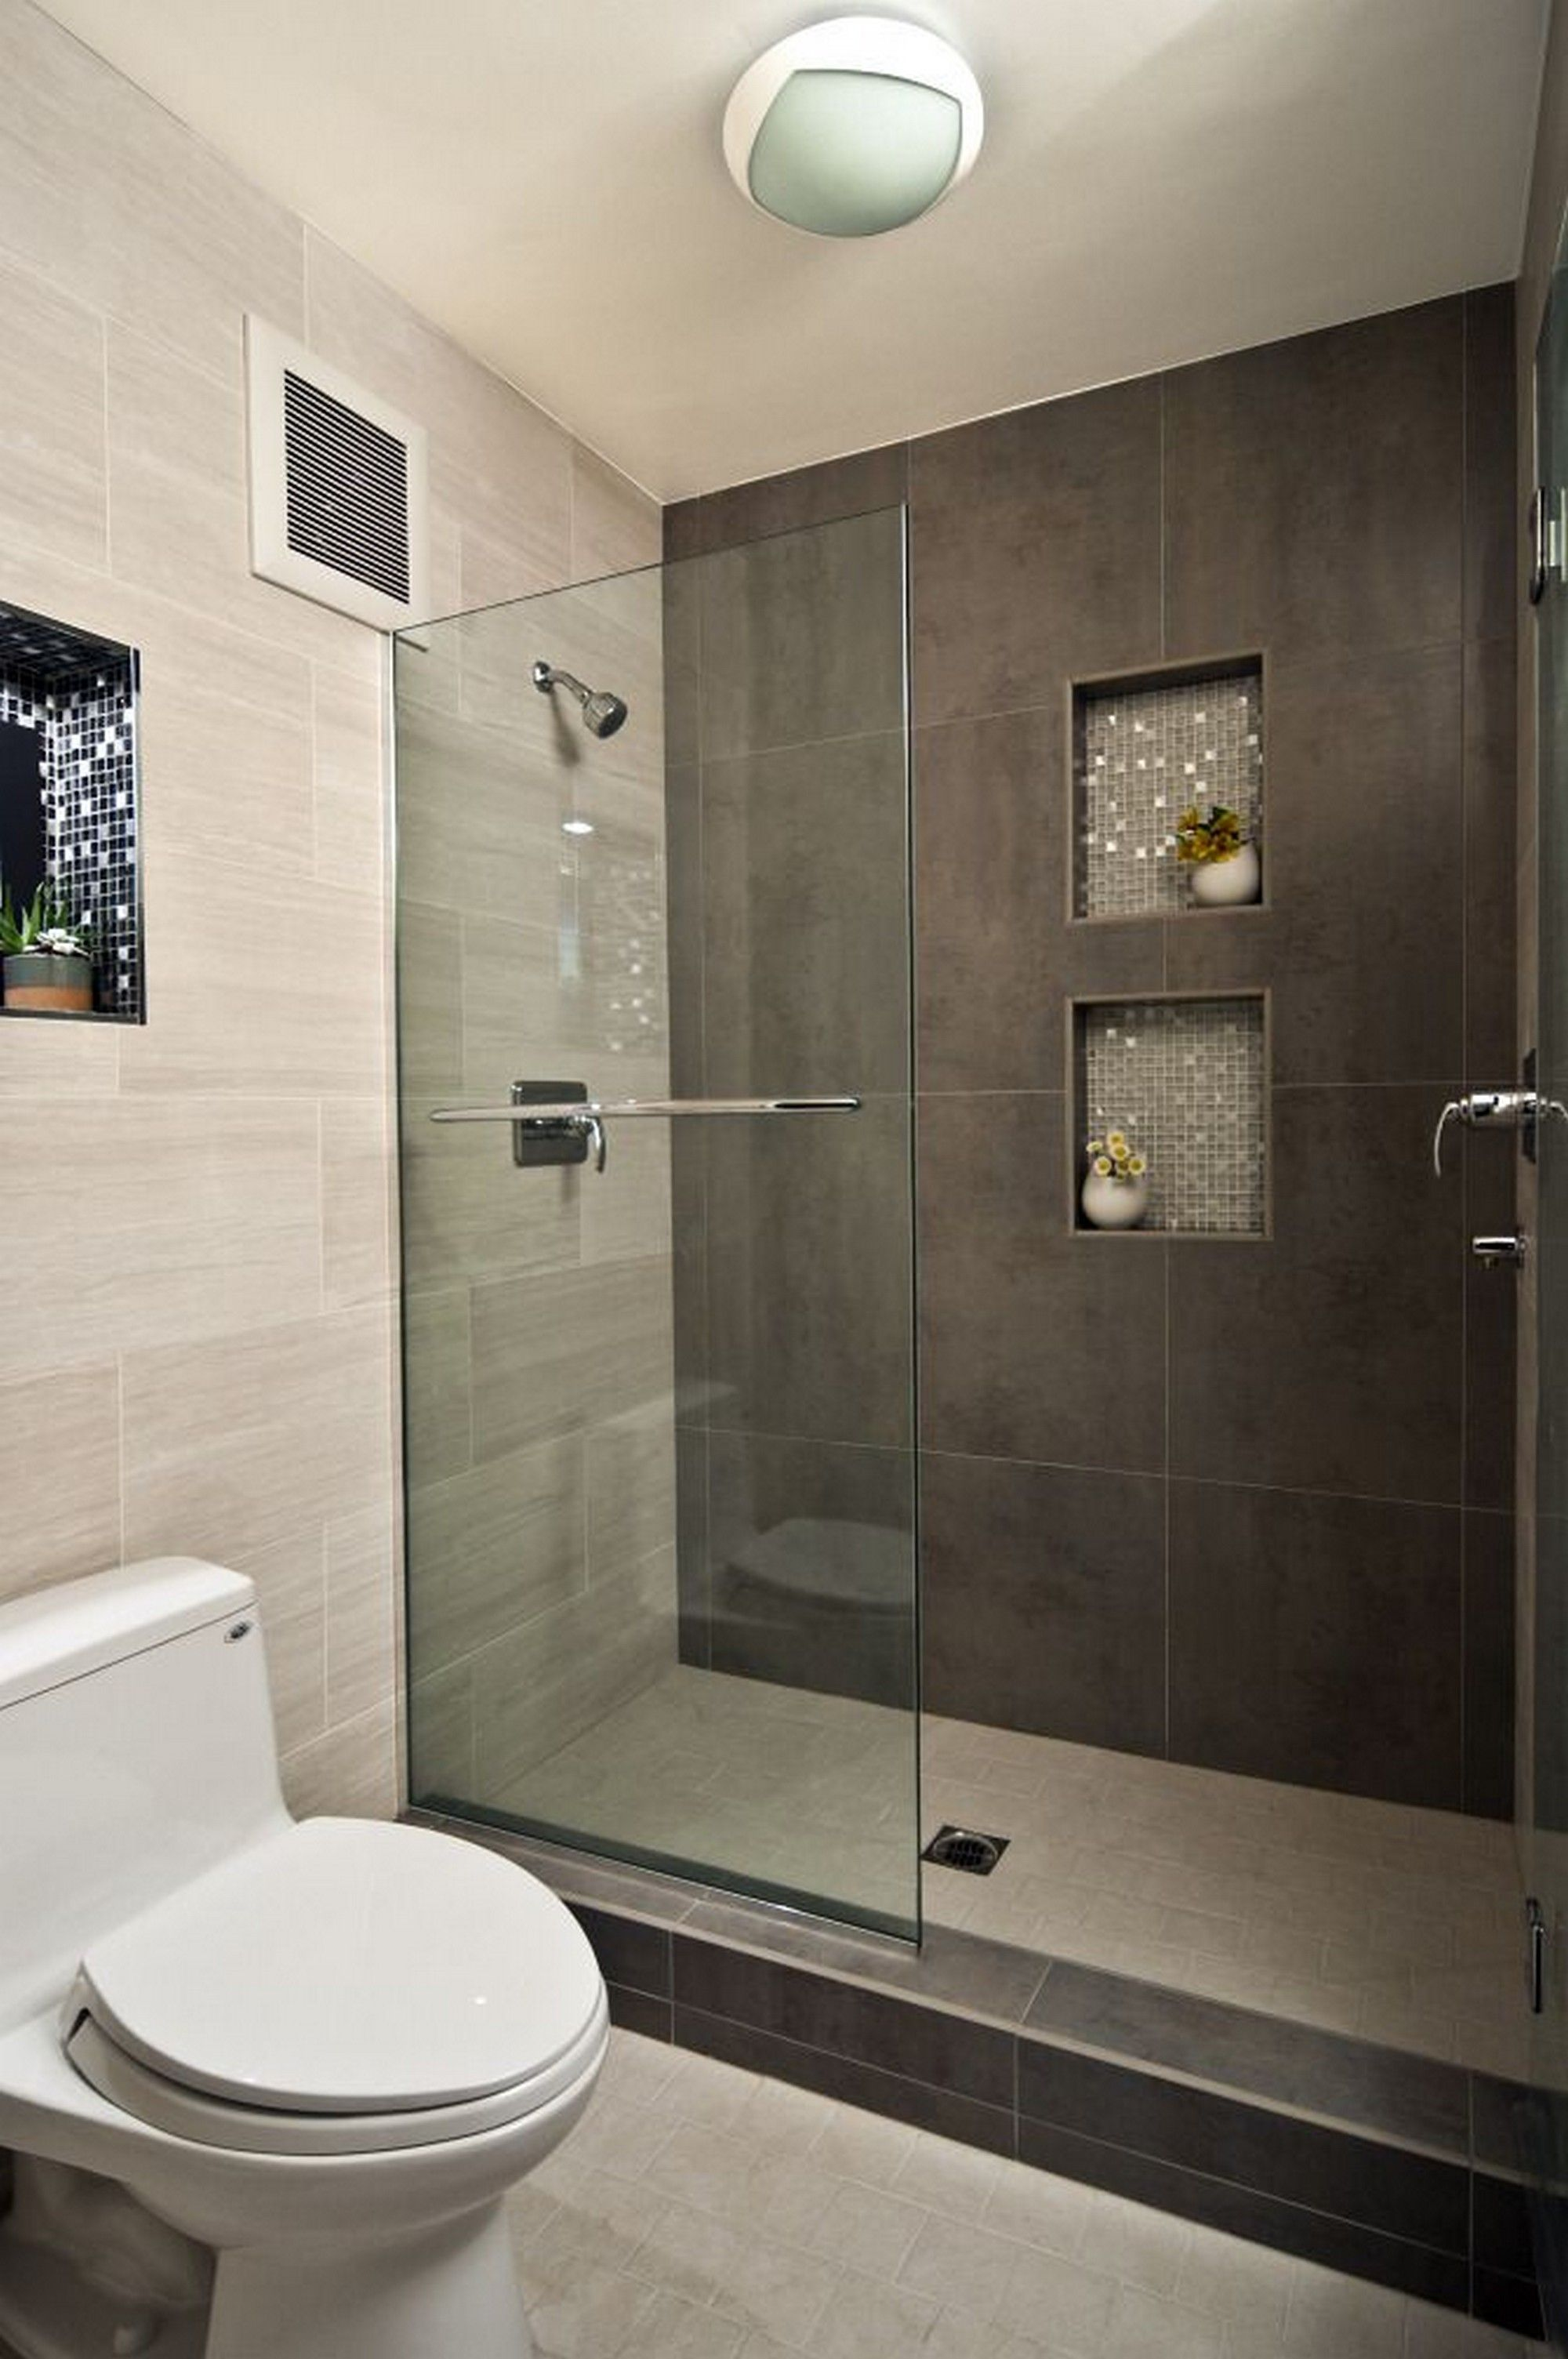 Etonnant Grey White Bathroom Walk In Shower Designs Decoration Using Grey Concrete  Tile Bathroom Walls Including Clear Glass Shower Door And In Wall Grey  Mosaic Tile ...